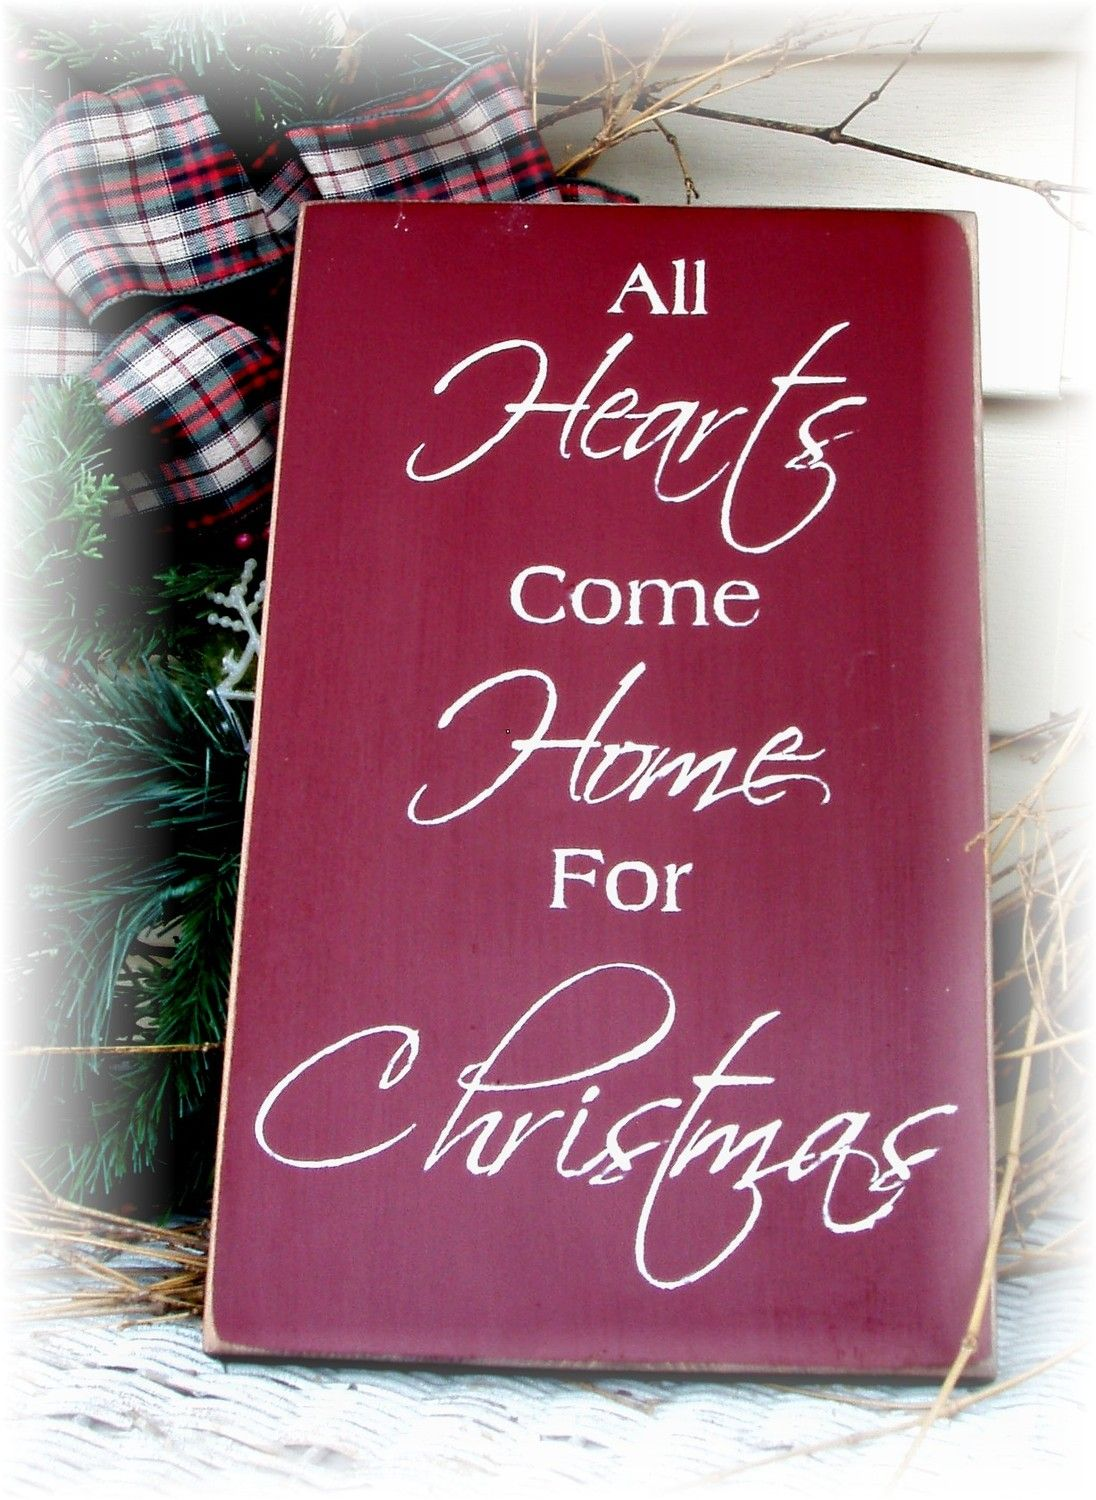 Come Home For Christmas.All Hearts Come Home For Christmas Primitive Wood Sign